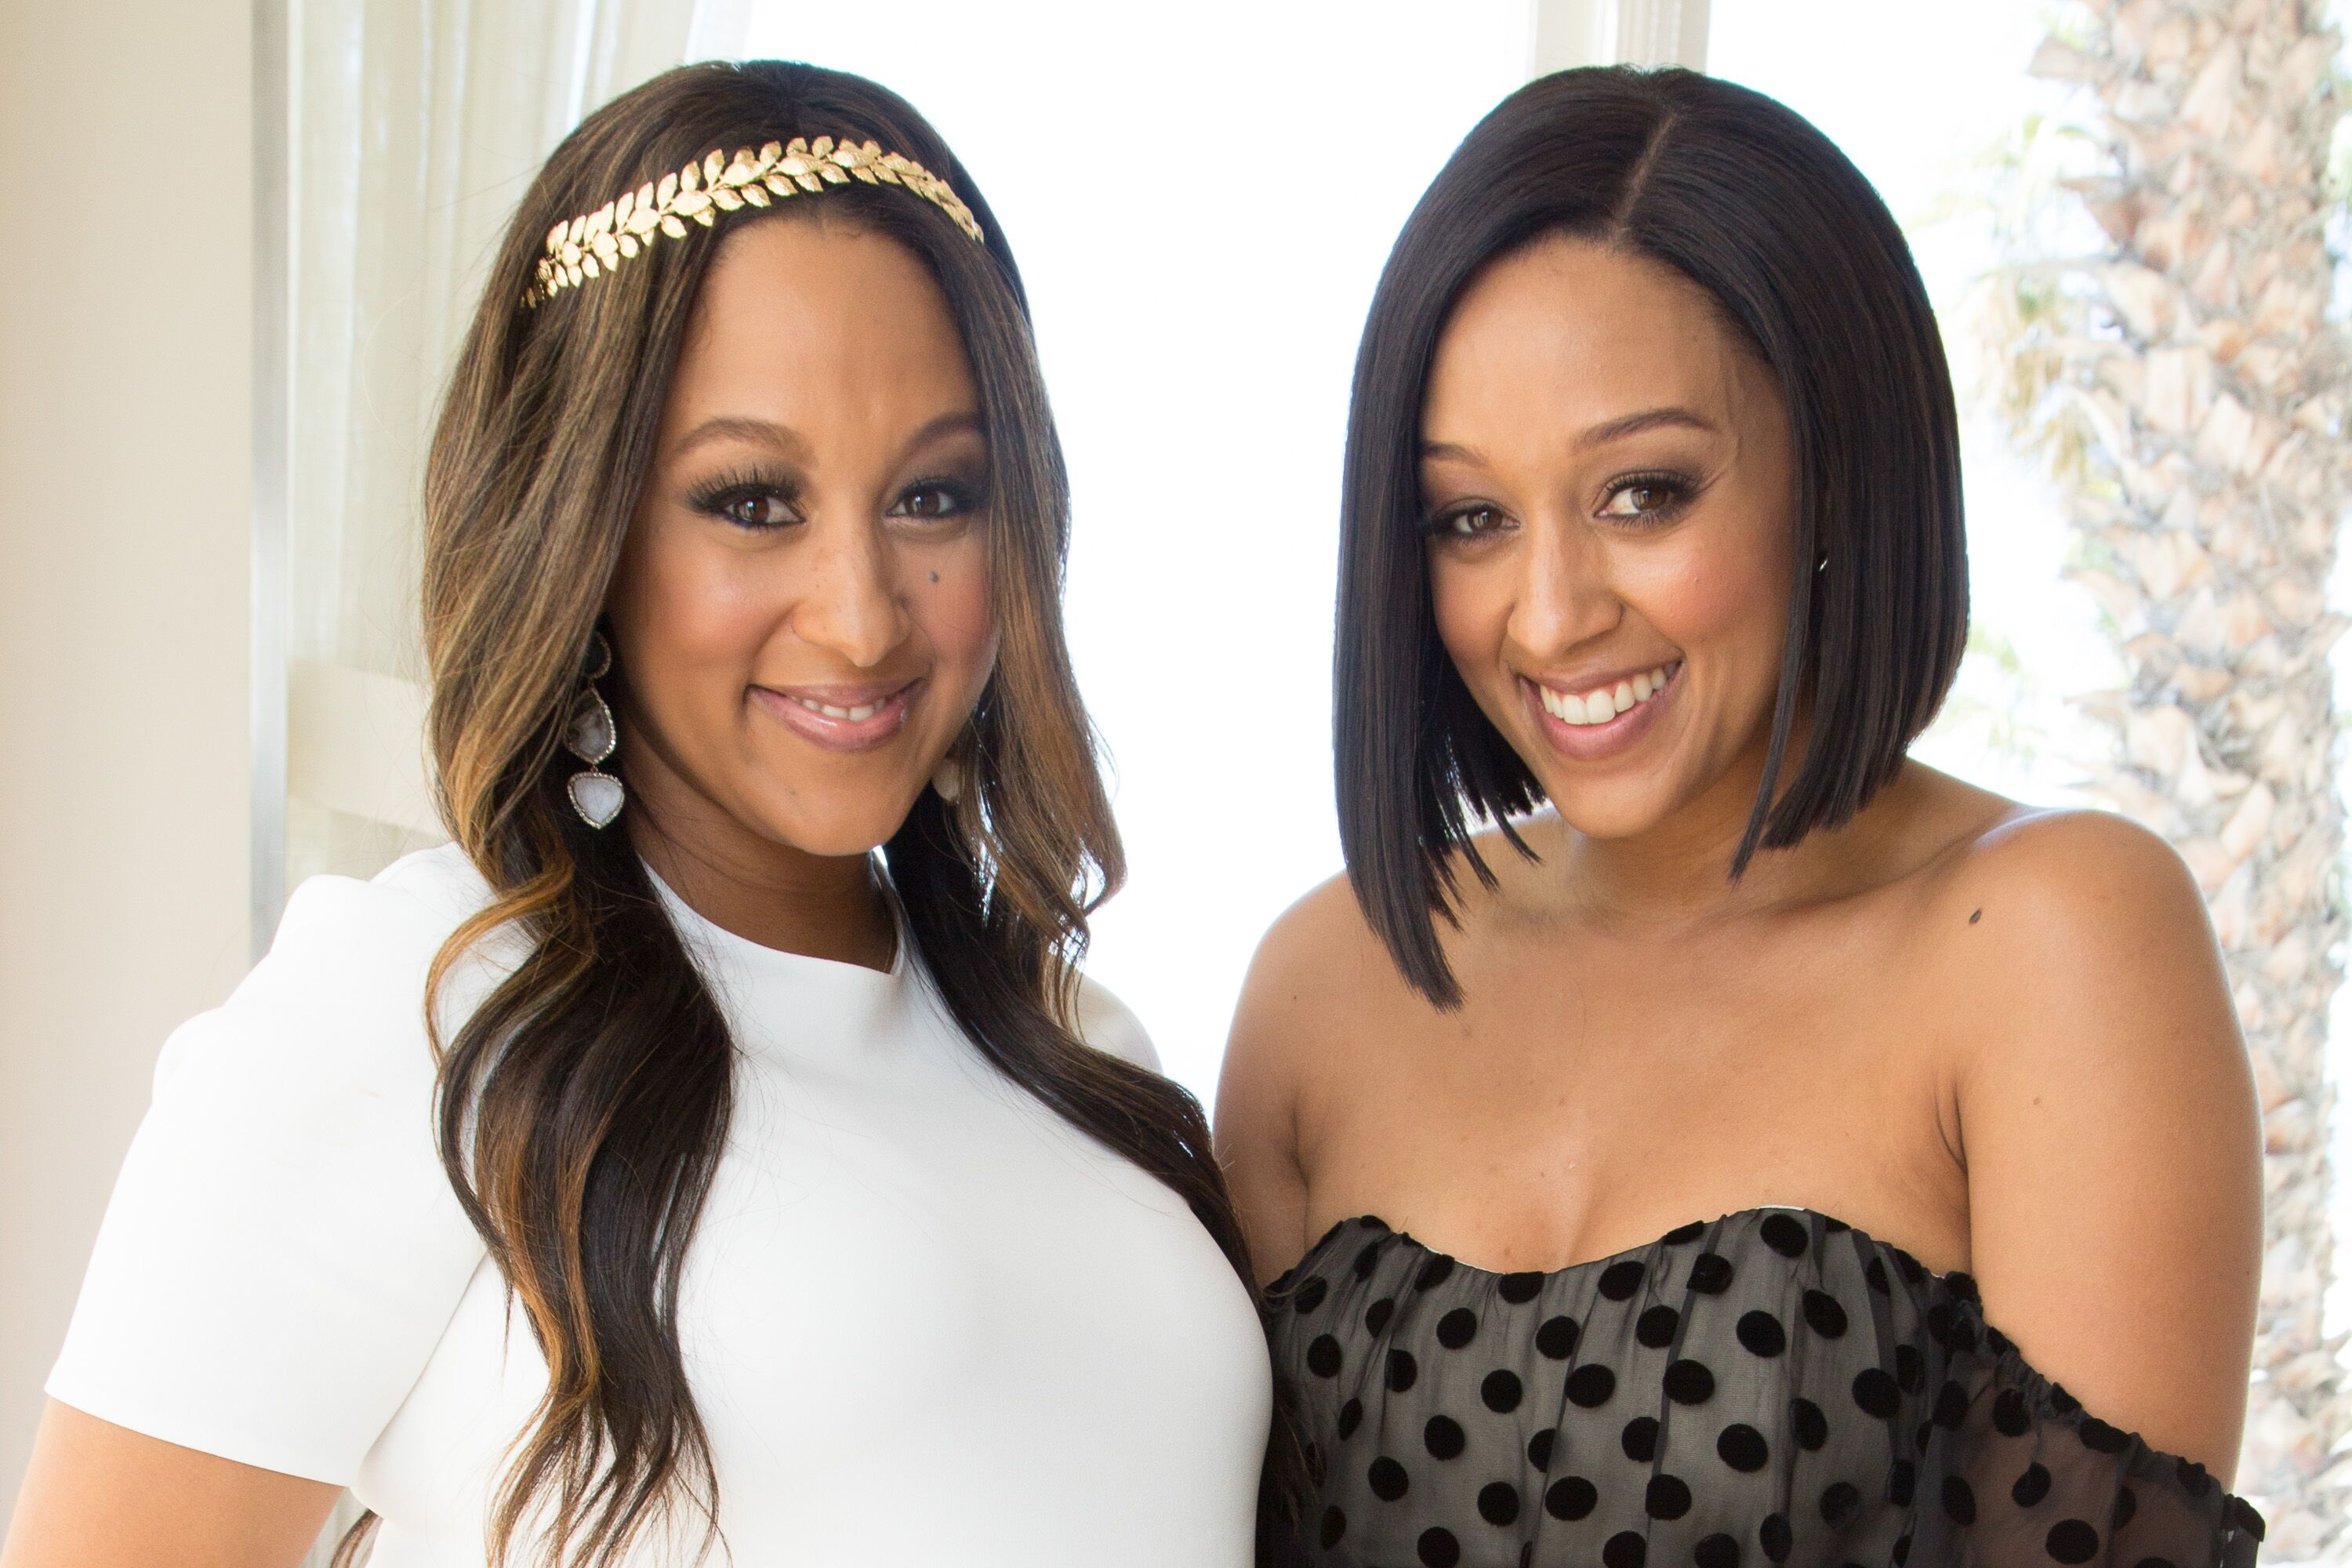 Tamera Mowry-Housley (L) and Tia Mowry attend Tamera Mowry-Housley's baby shower at Casa Del Mar on April 4, 2015 in Santa Monica, California. | Source: Getty images